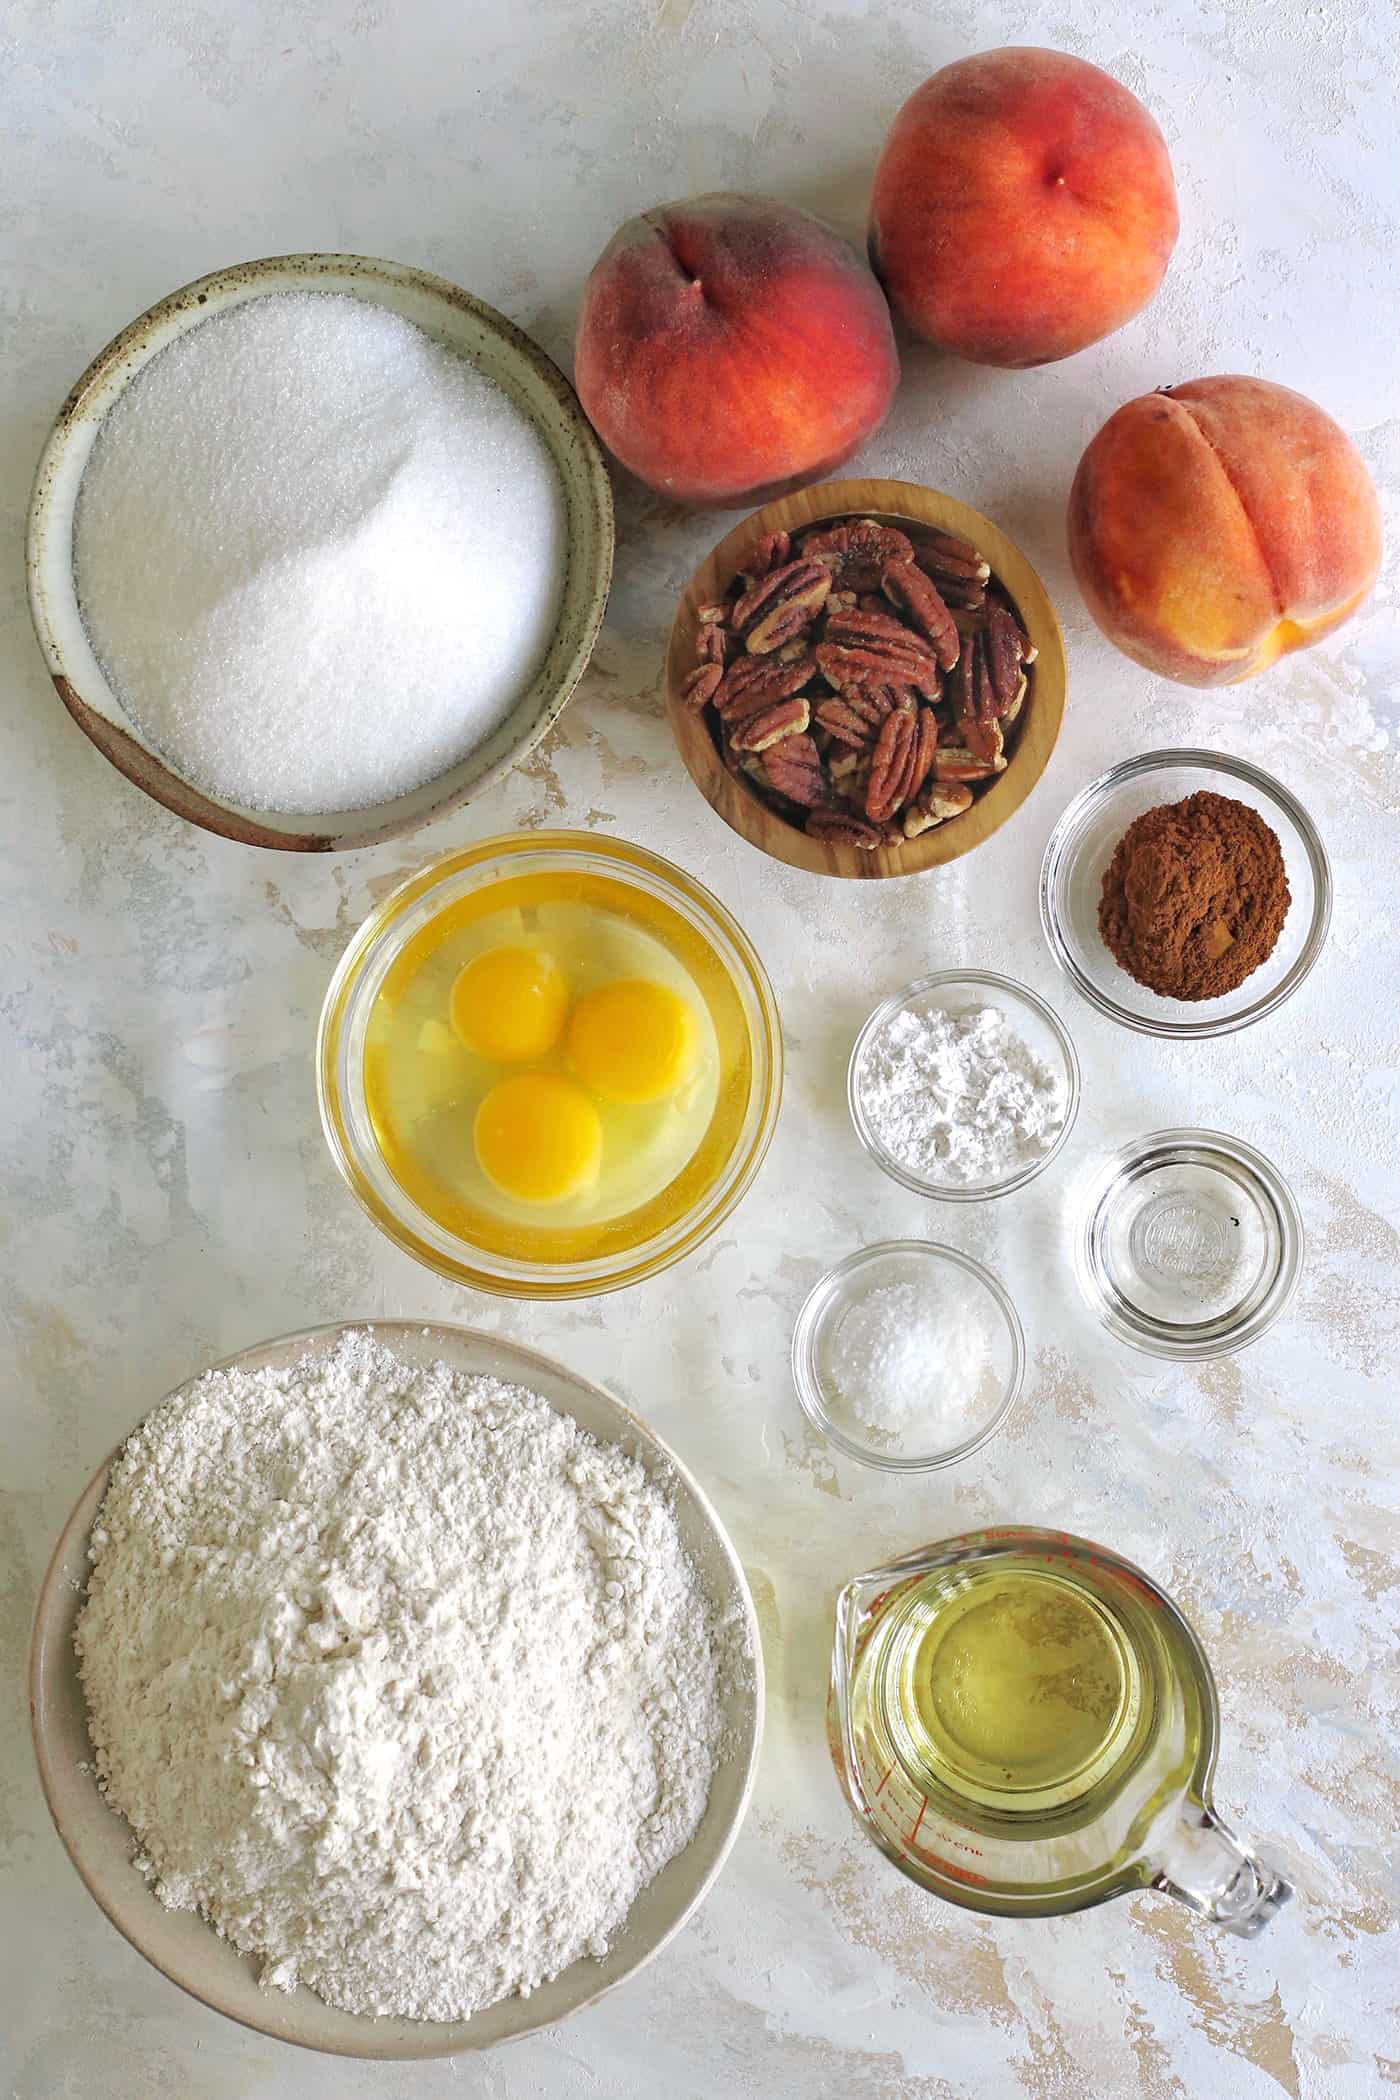 ingredients for peach bread, in separate bowls